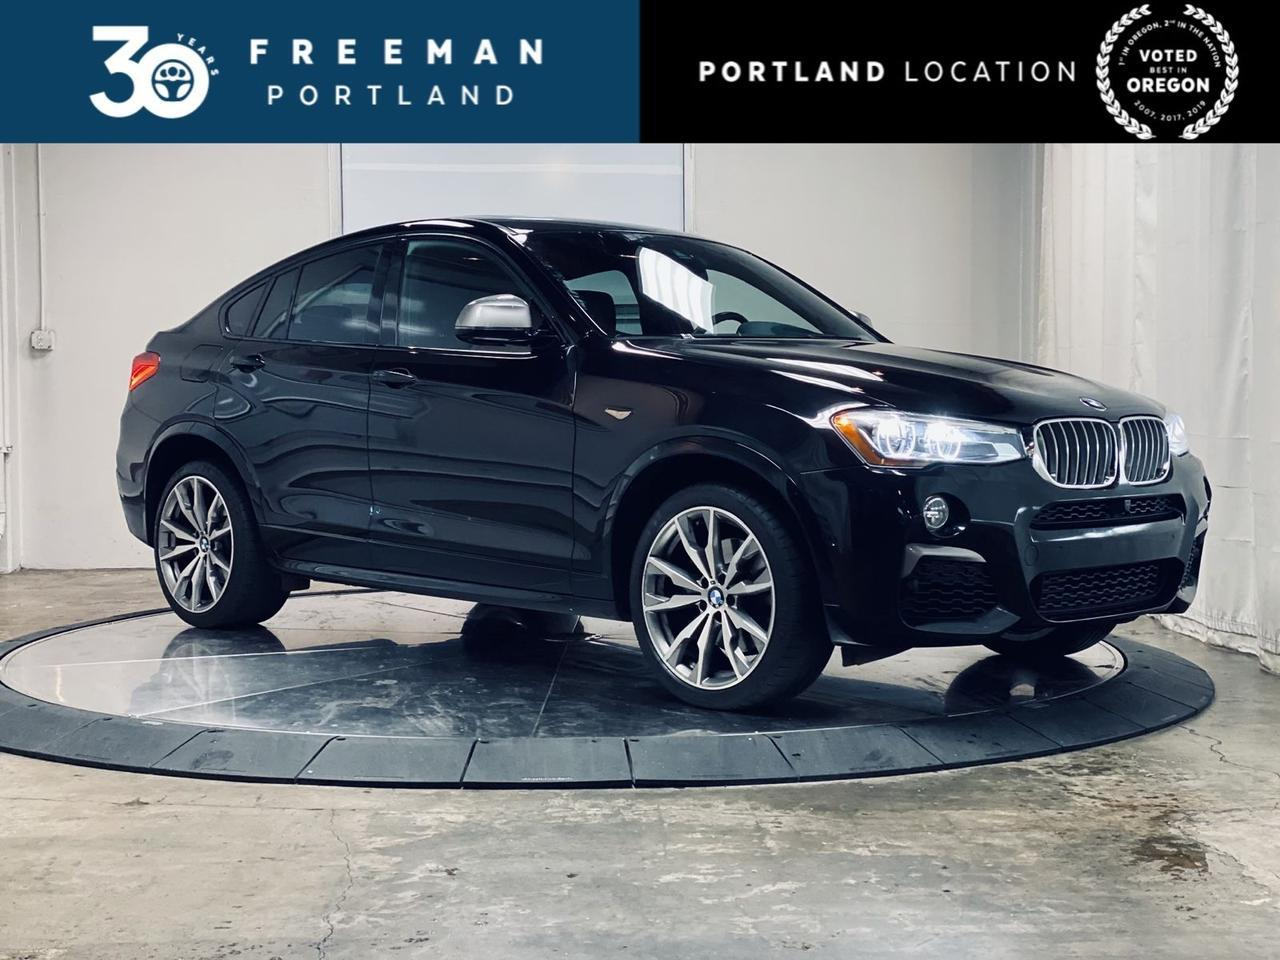 2017 BMW X4 M40i Heads Up Display Active Blind Spot Detection Portland OR